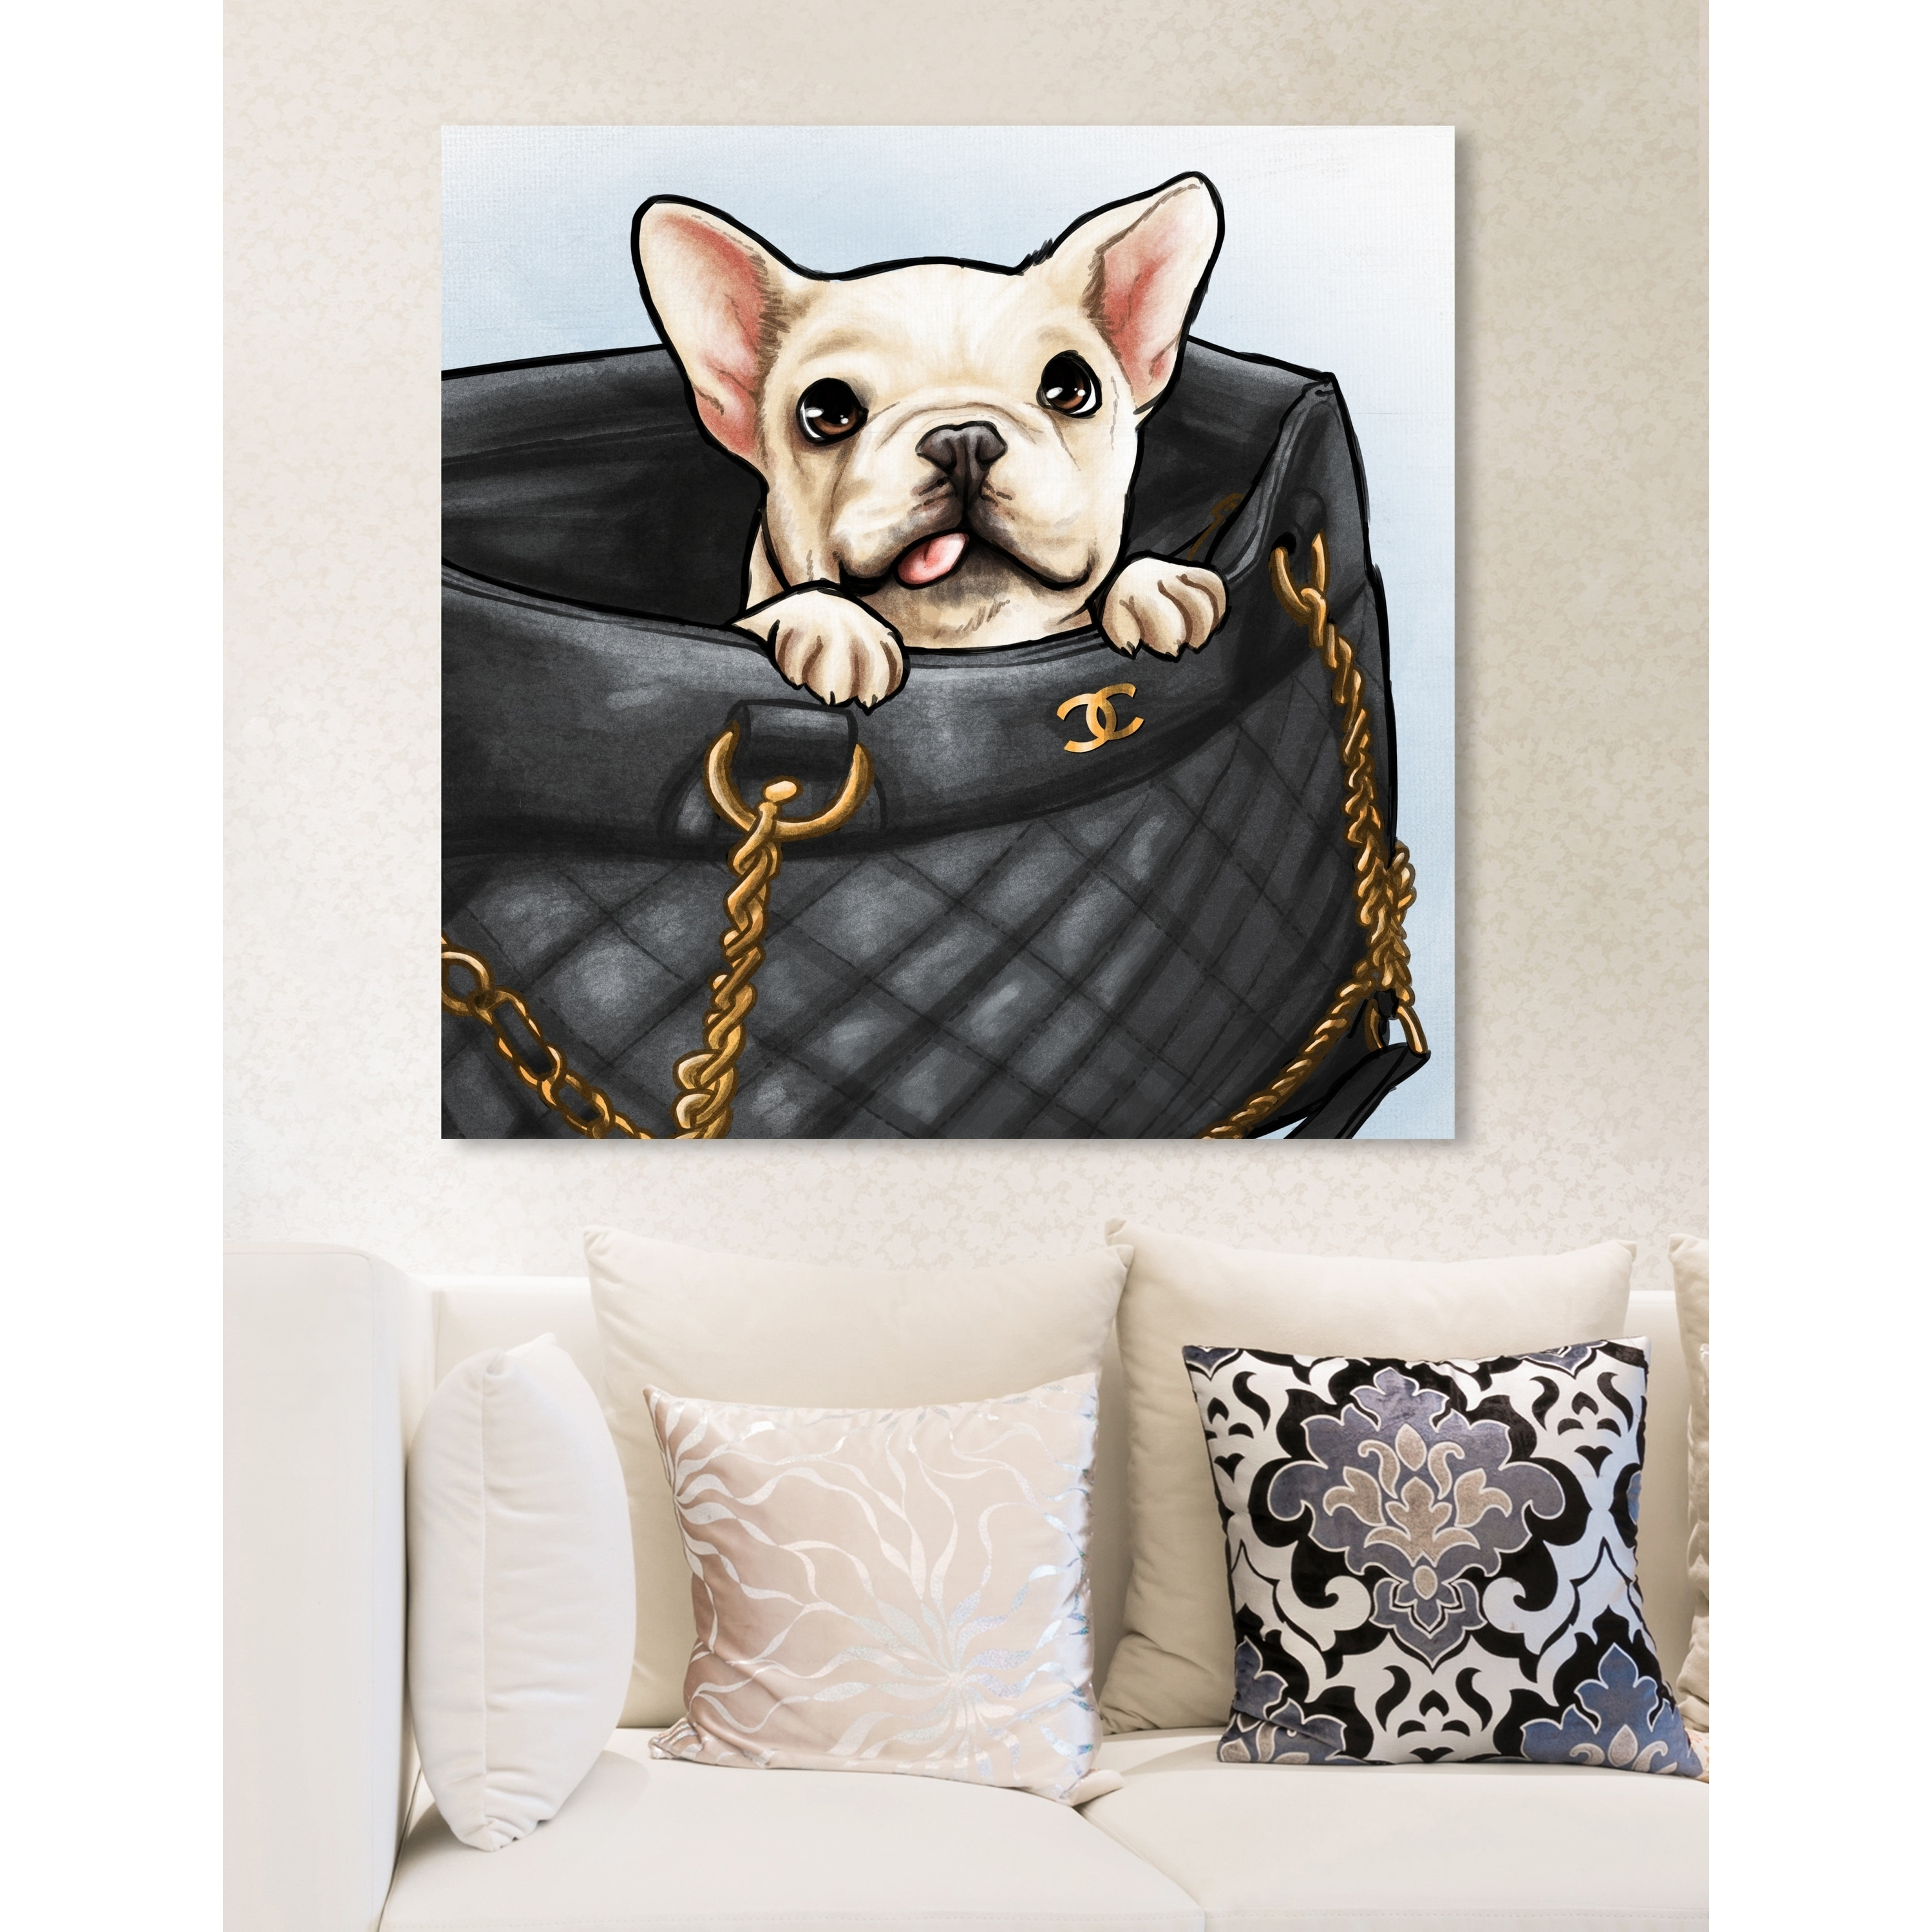 Oliver Gal Peek A Boo Frenchie Fashion And Glam Wall Art Canvas Print Black White Overstock 23386921